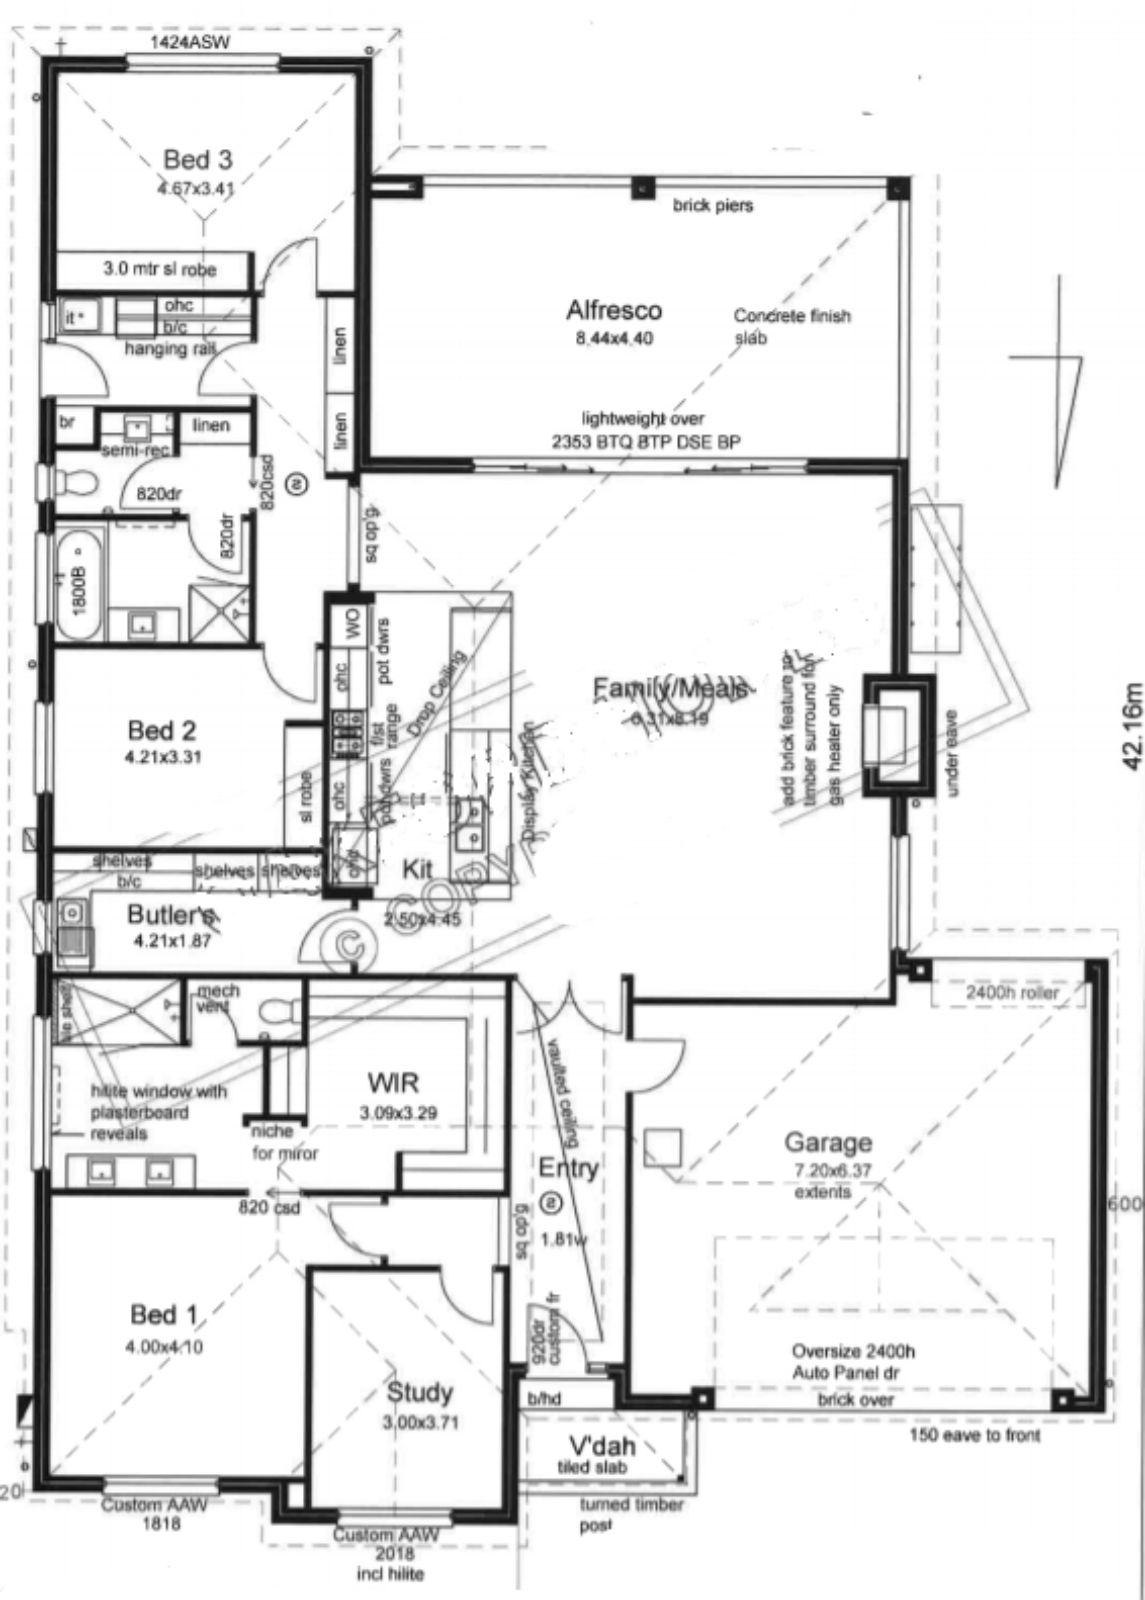 House design thoughts